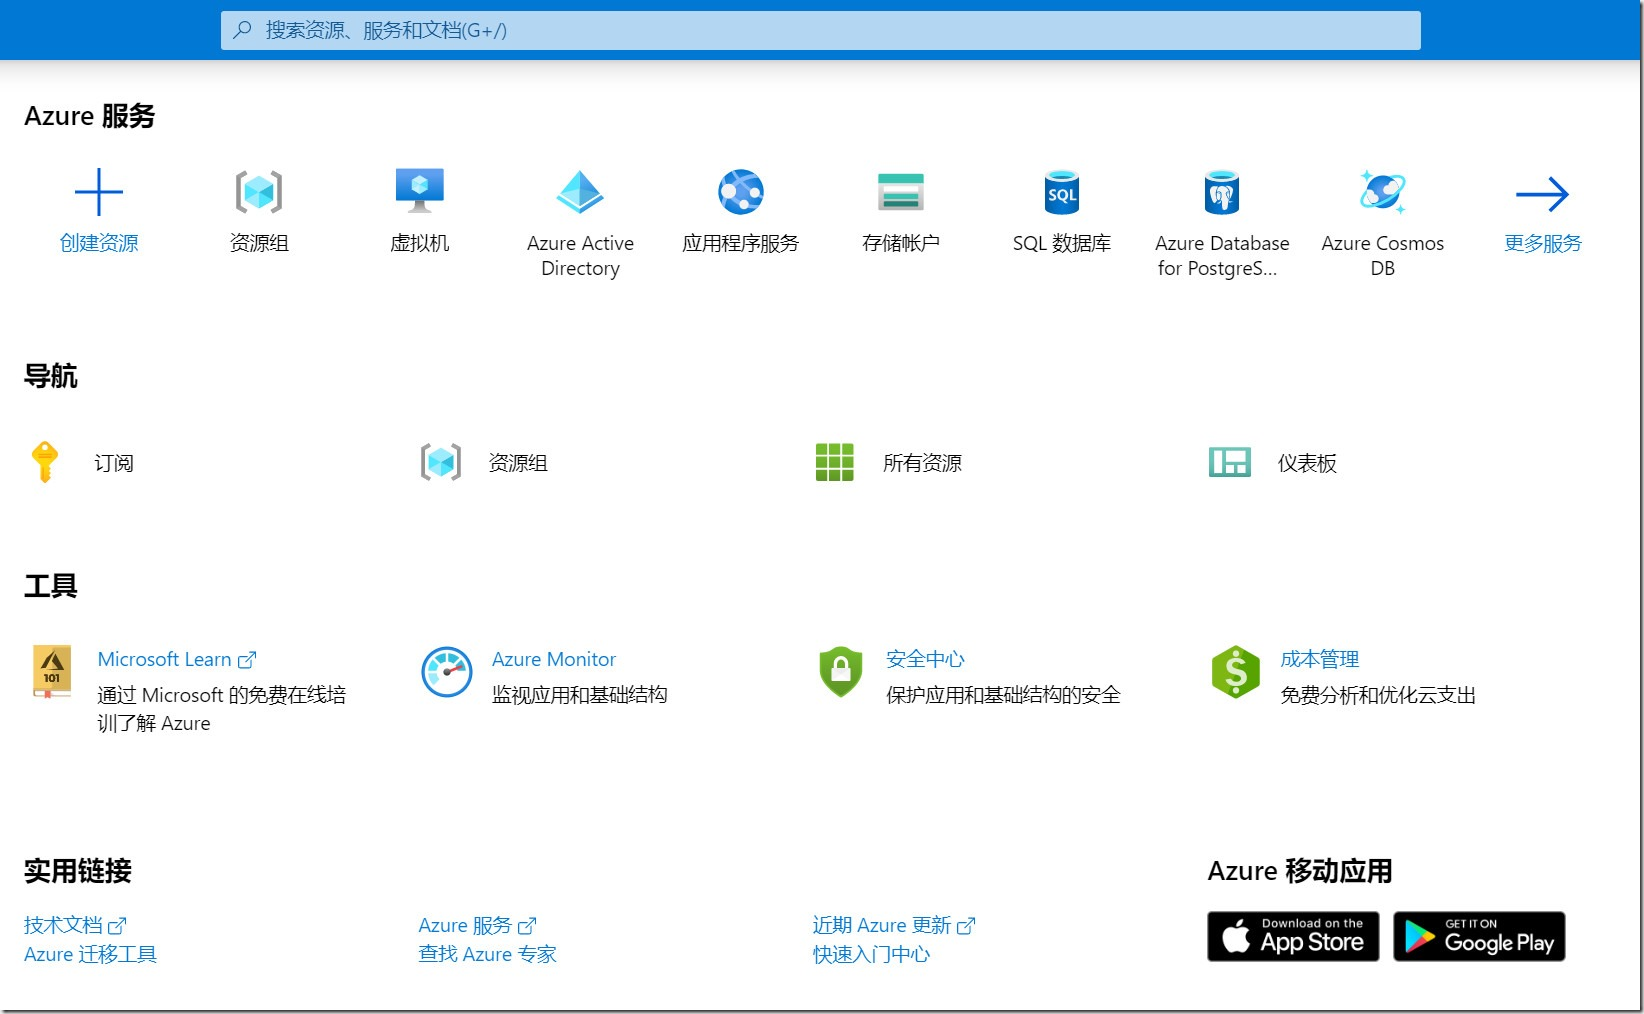 azure-new-ui